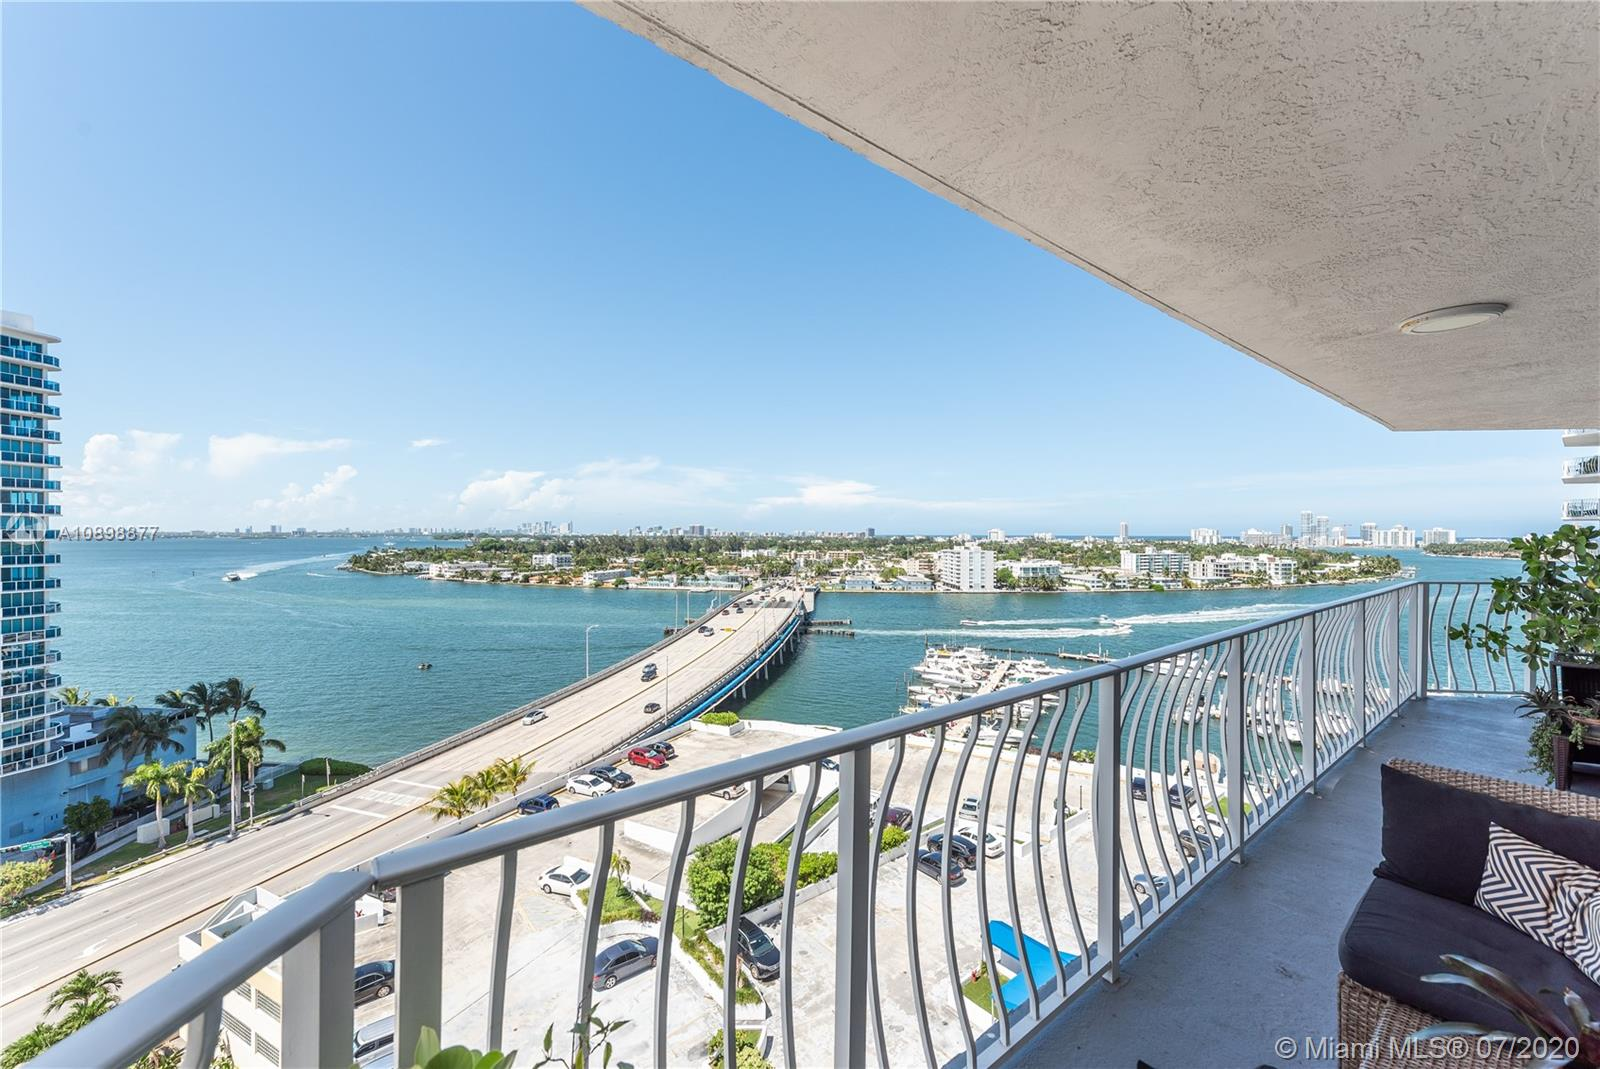 7601 E Treasure Dr #1512 For Sale A10898877, FL